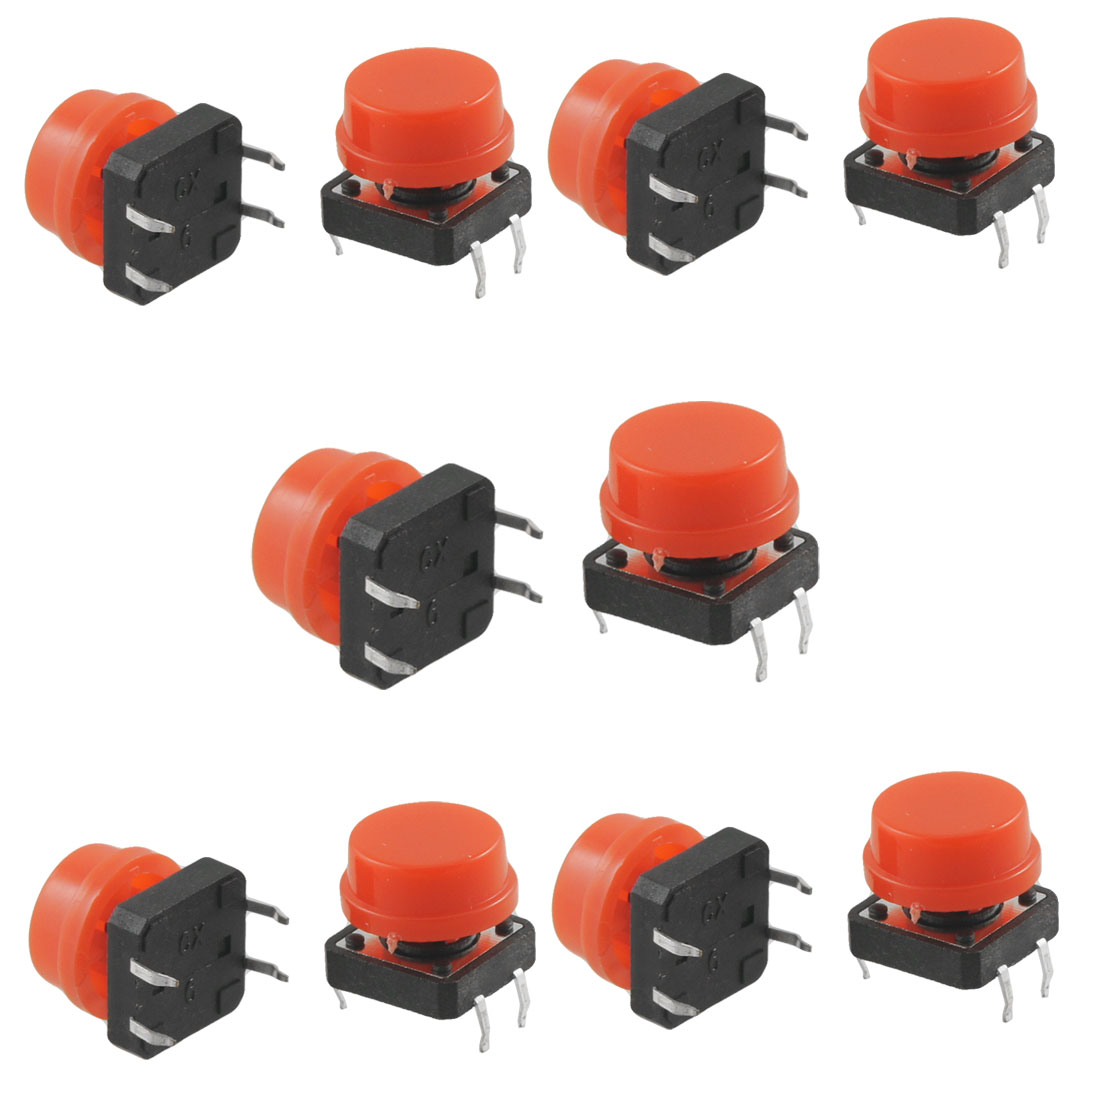 10pcs Momentary Tact Tactile Push Button Switch 12 x 12mm x 15mm 4 Pin DIP w Cap